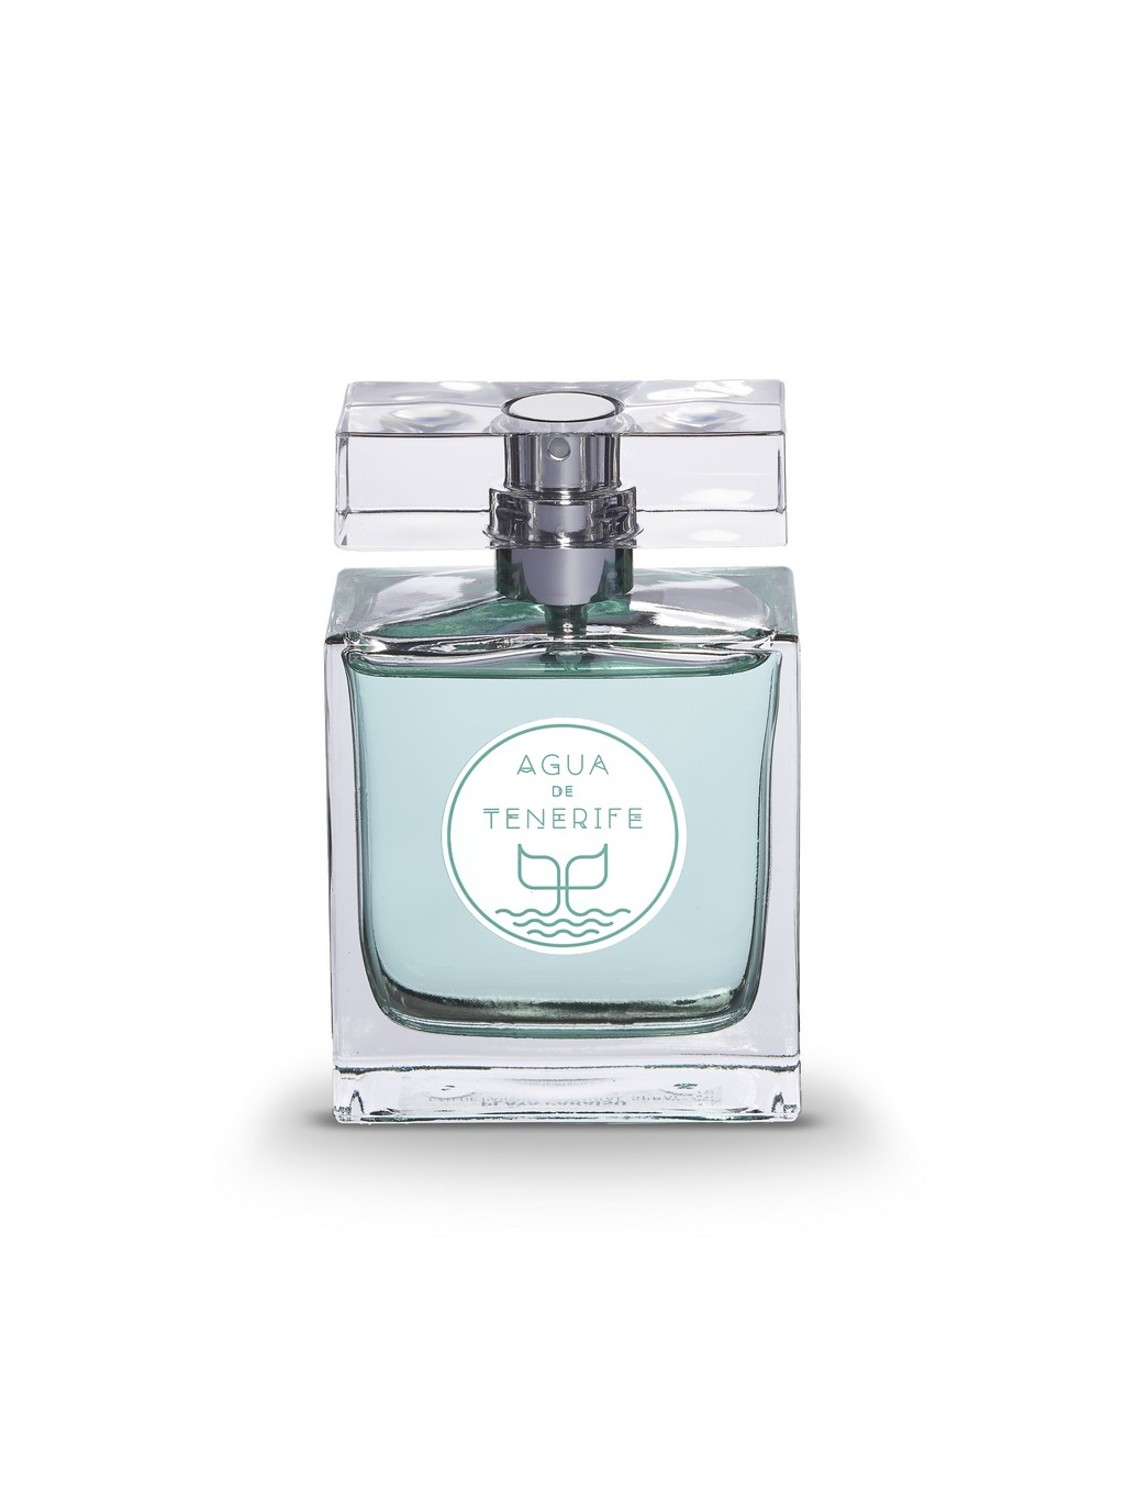 shop Agua de Tenerife  LAS FRAGANCIAS DE LA ISLA: Playa Paraiso Eau de Parfum 50 ml.